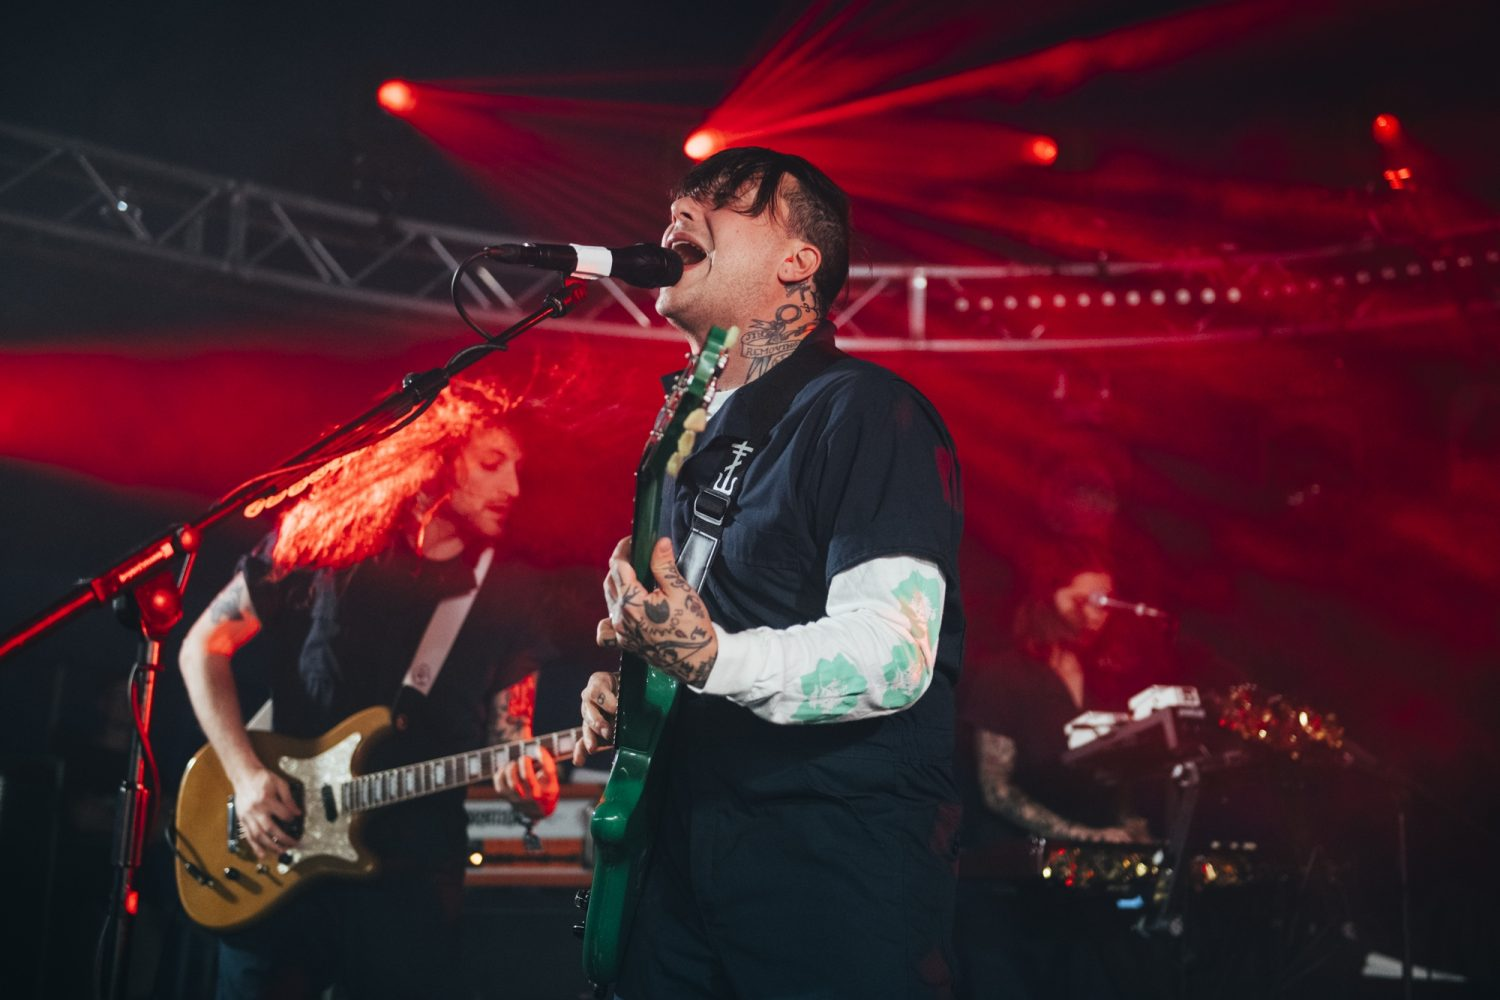 Frank Iero brings his Future Violents to this year's 2000trees